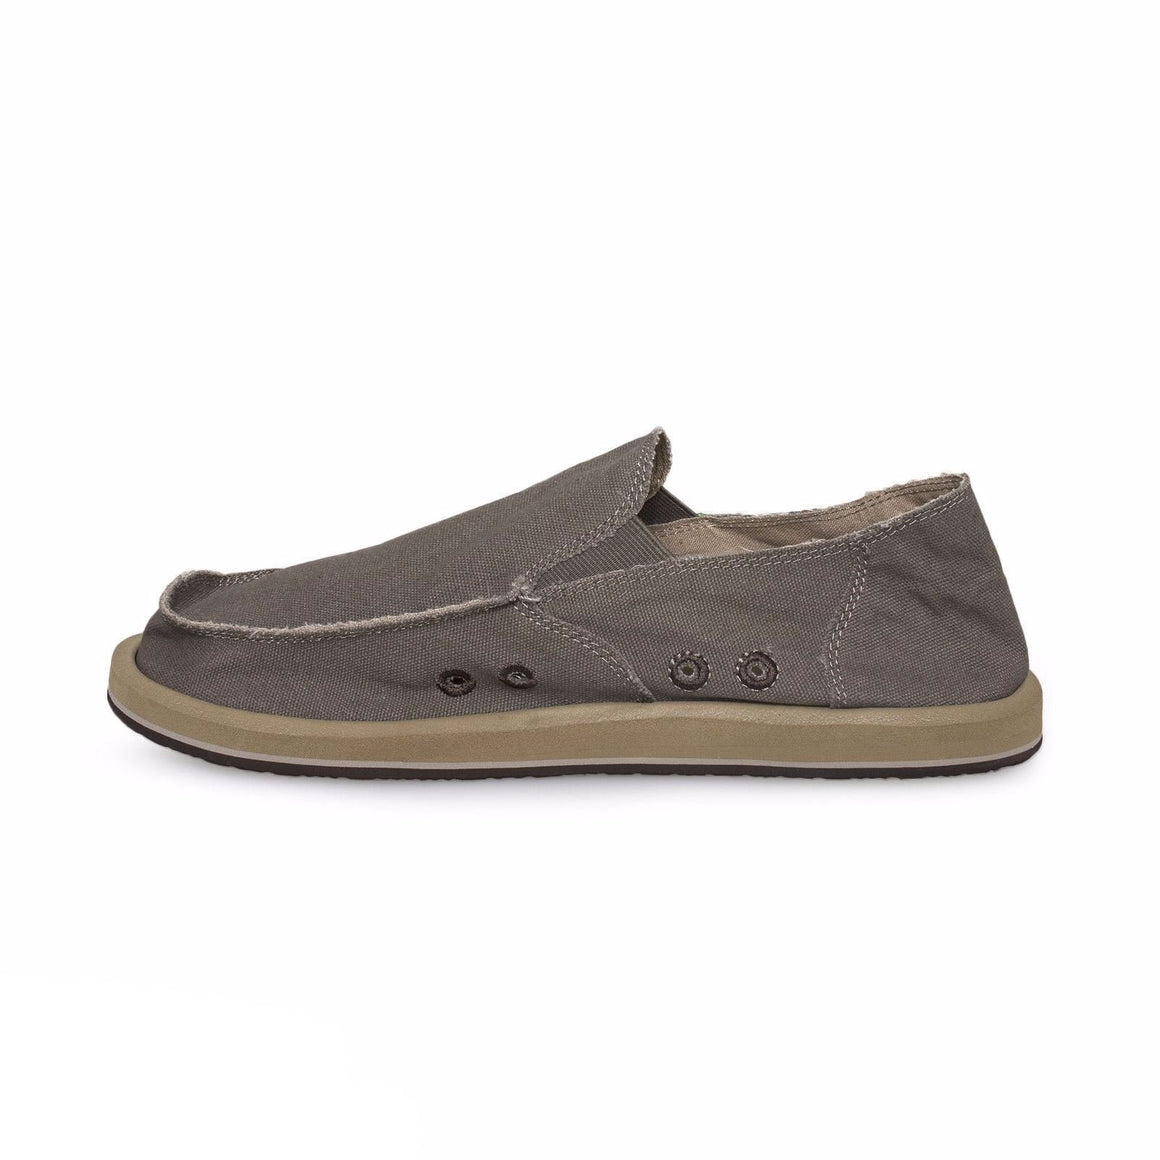 Sanuk Vagabond Brindle Shoes